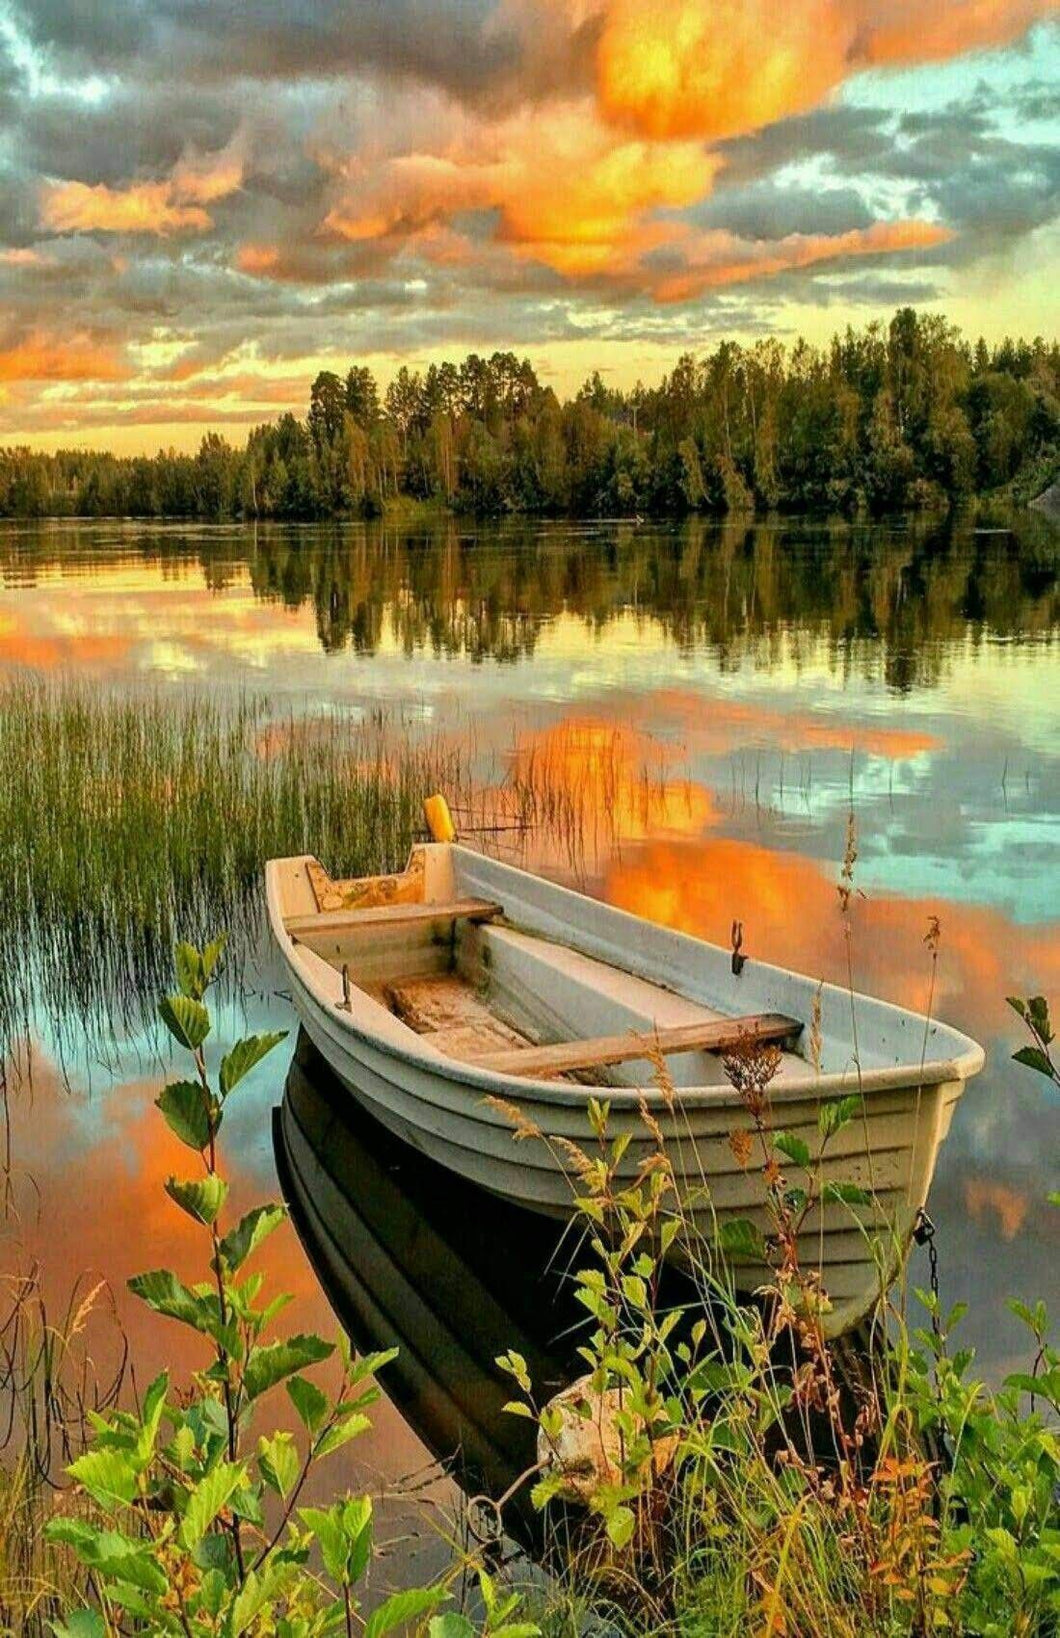 Boat in Lake Paint By Numbers kit